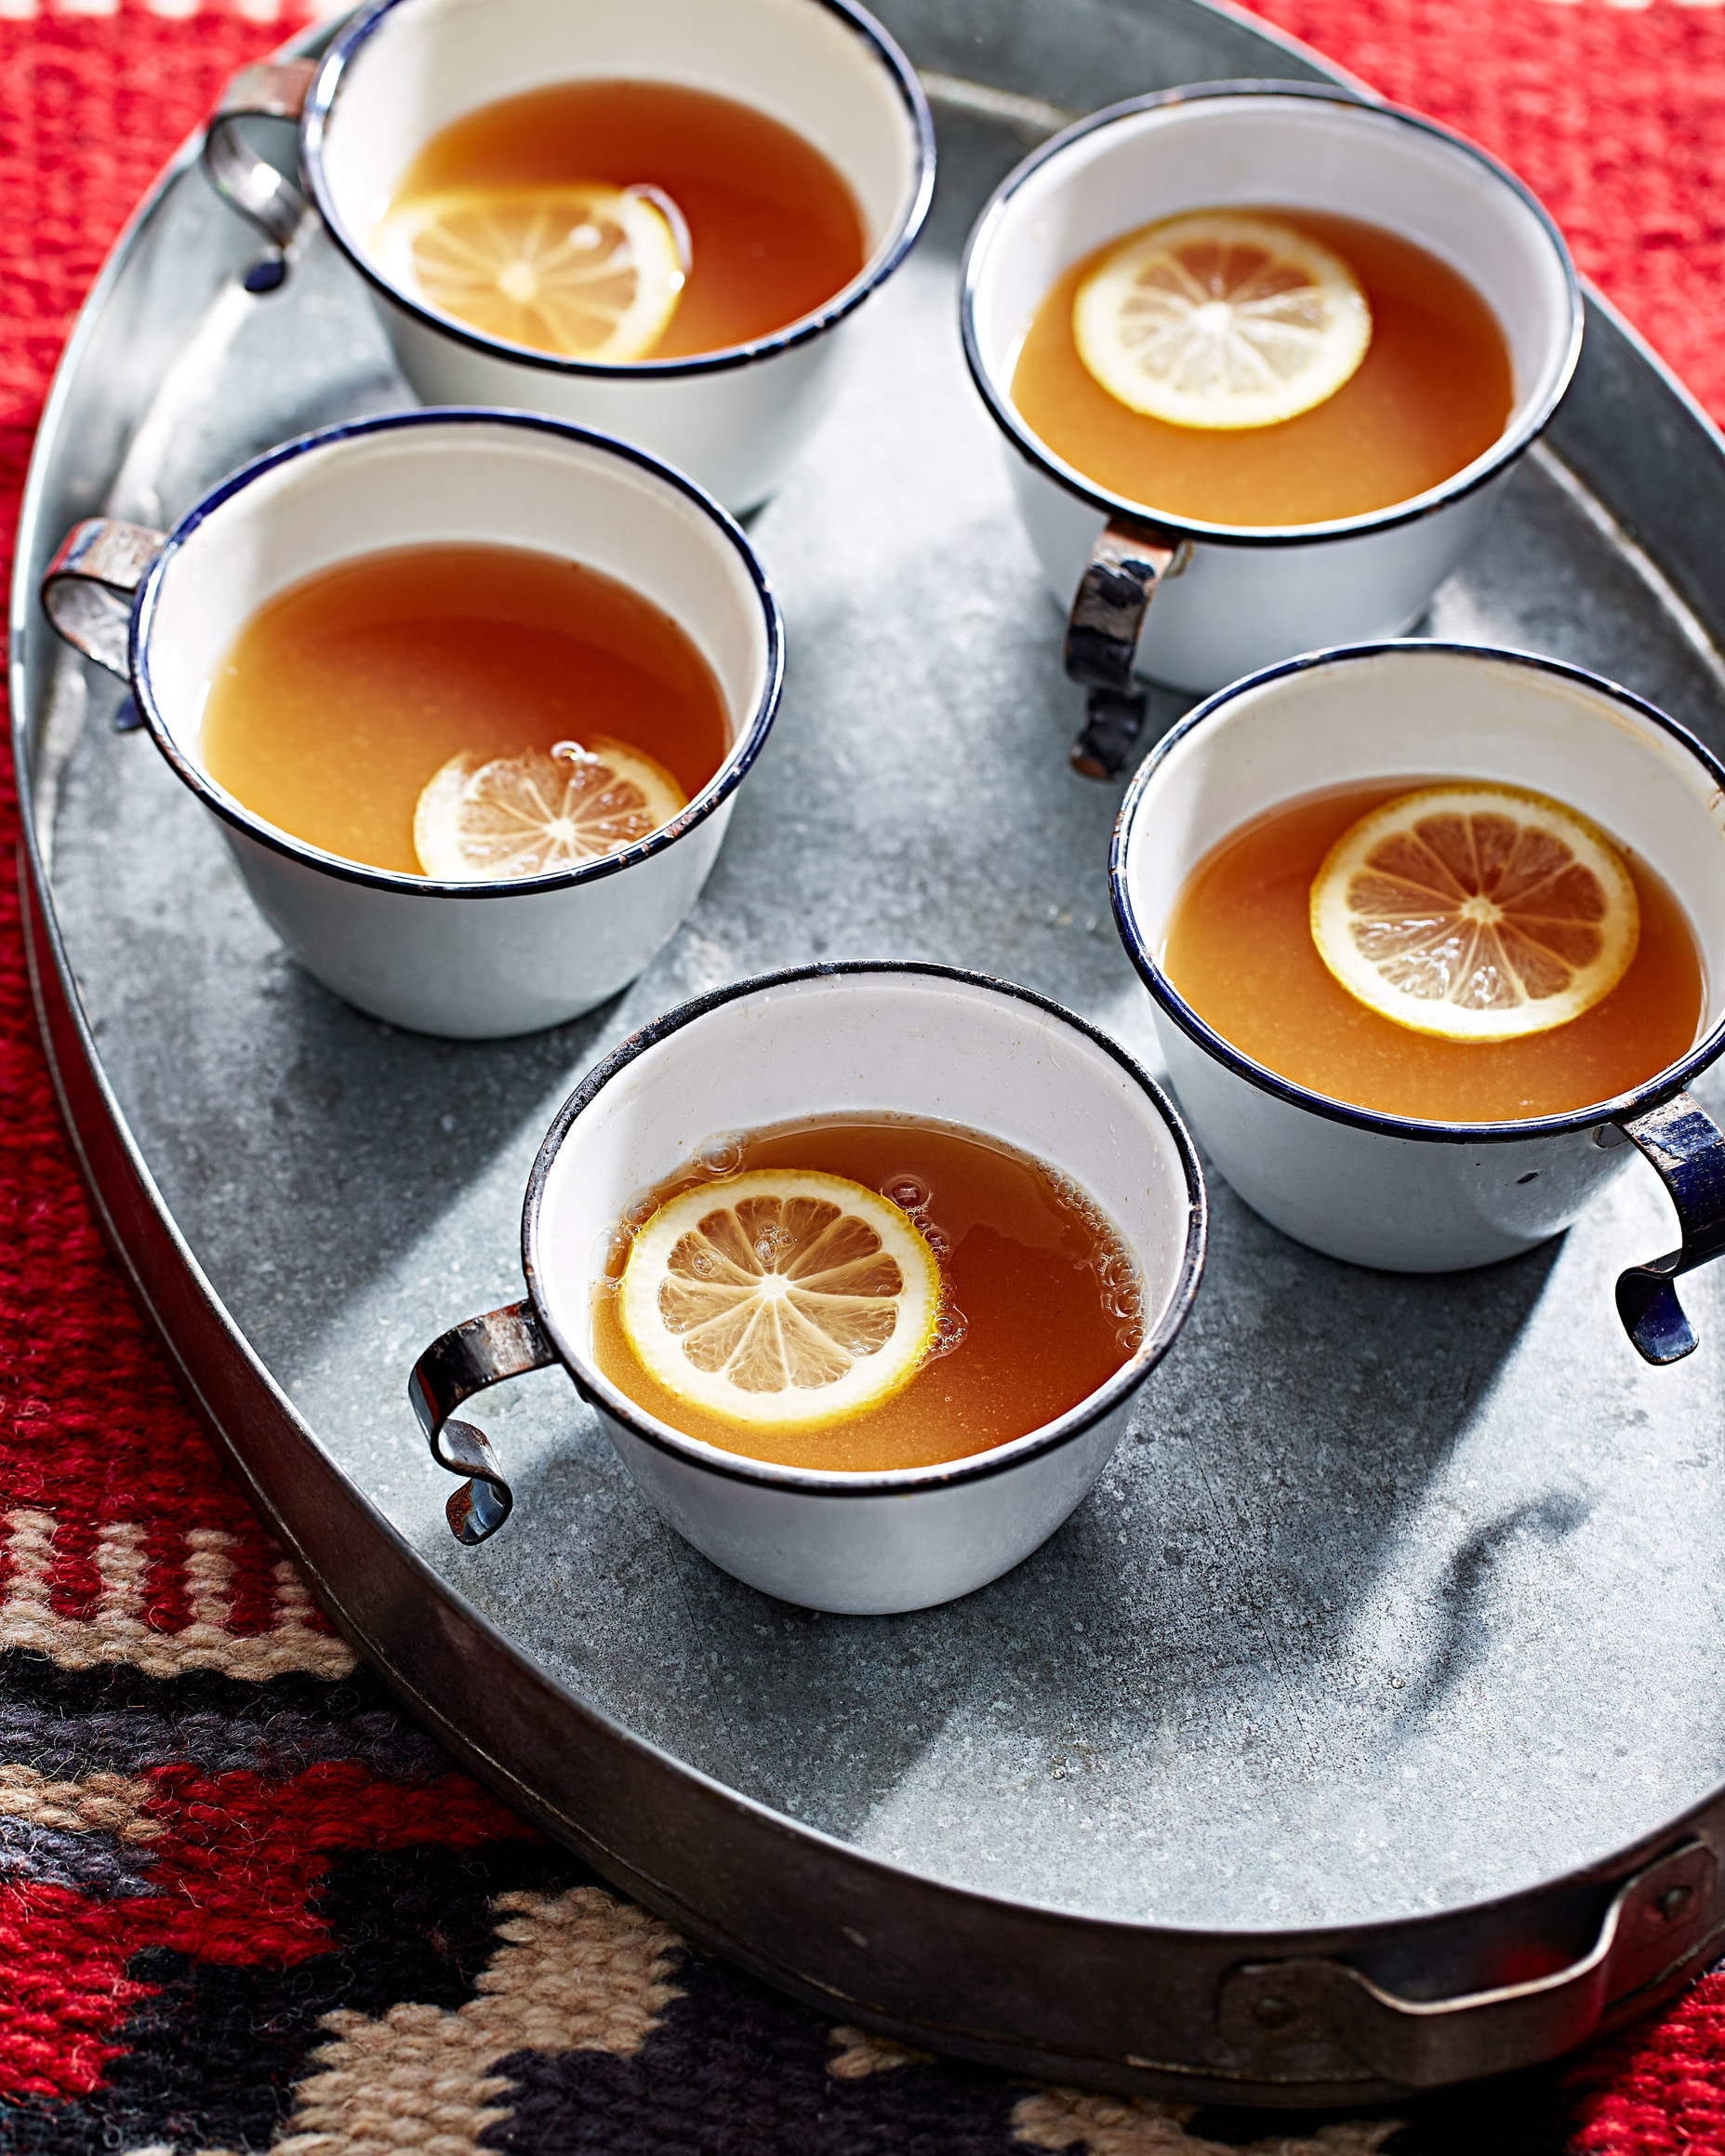 Serve These Festive Non-Alcoholic Drinks at Your Next Holiday Party